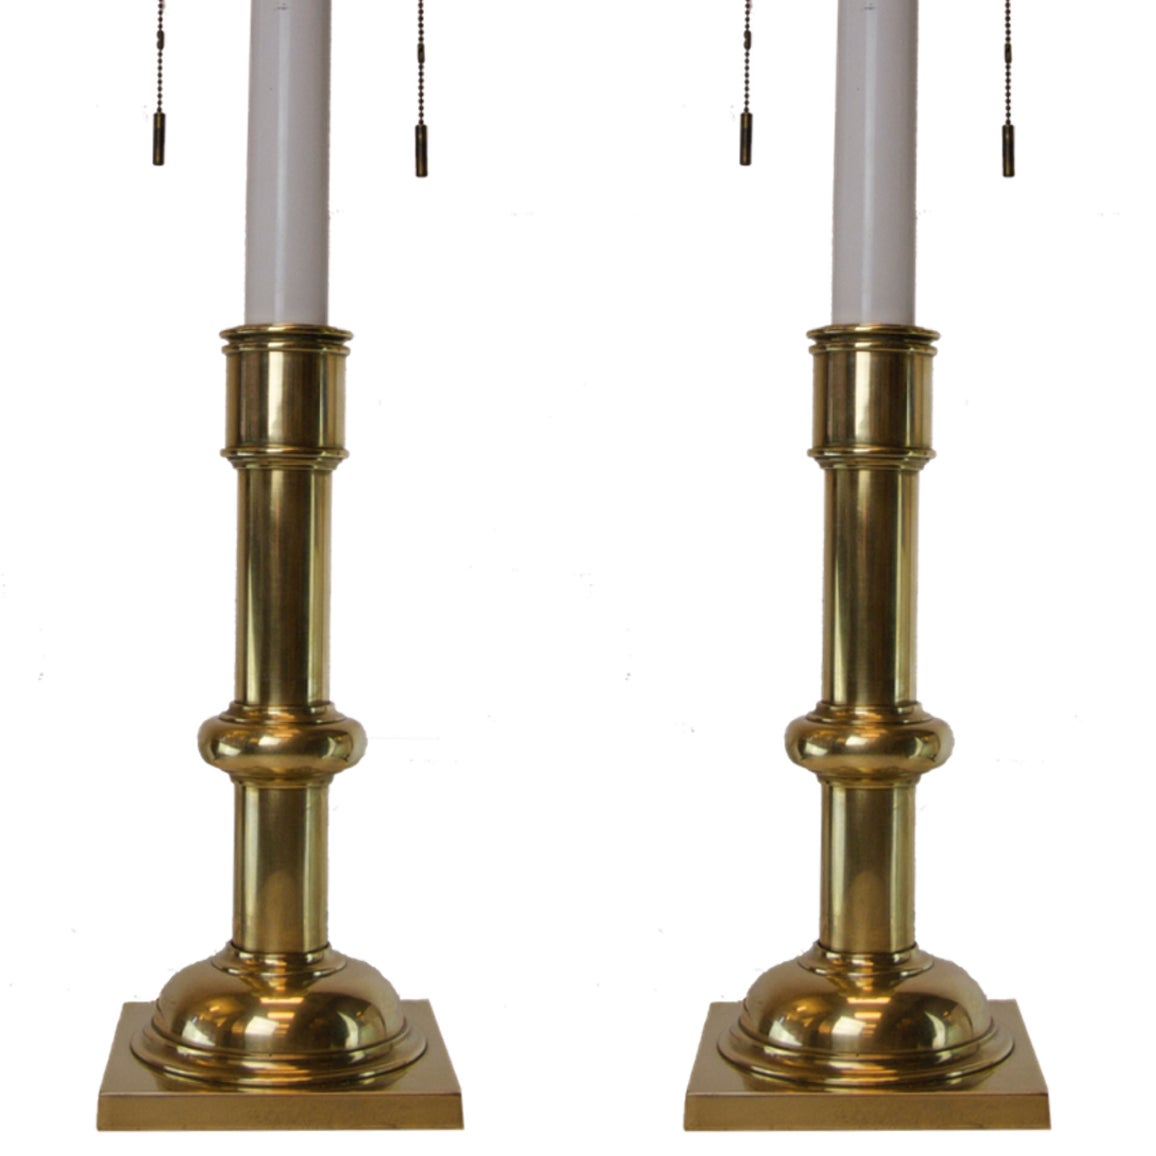 A nicely polished pair of brass Stiffel lamps in a Classic design.